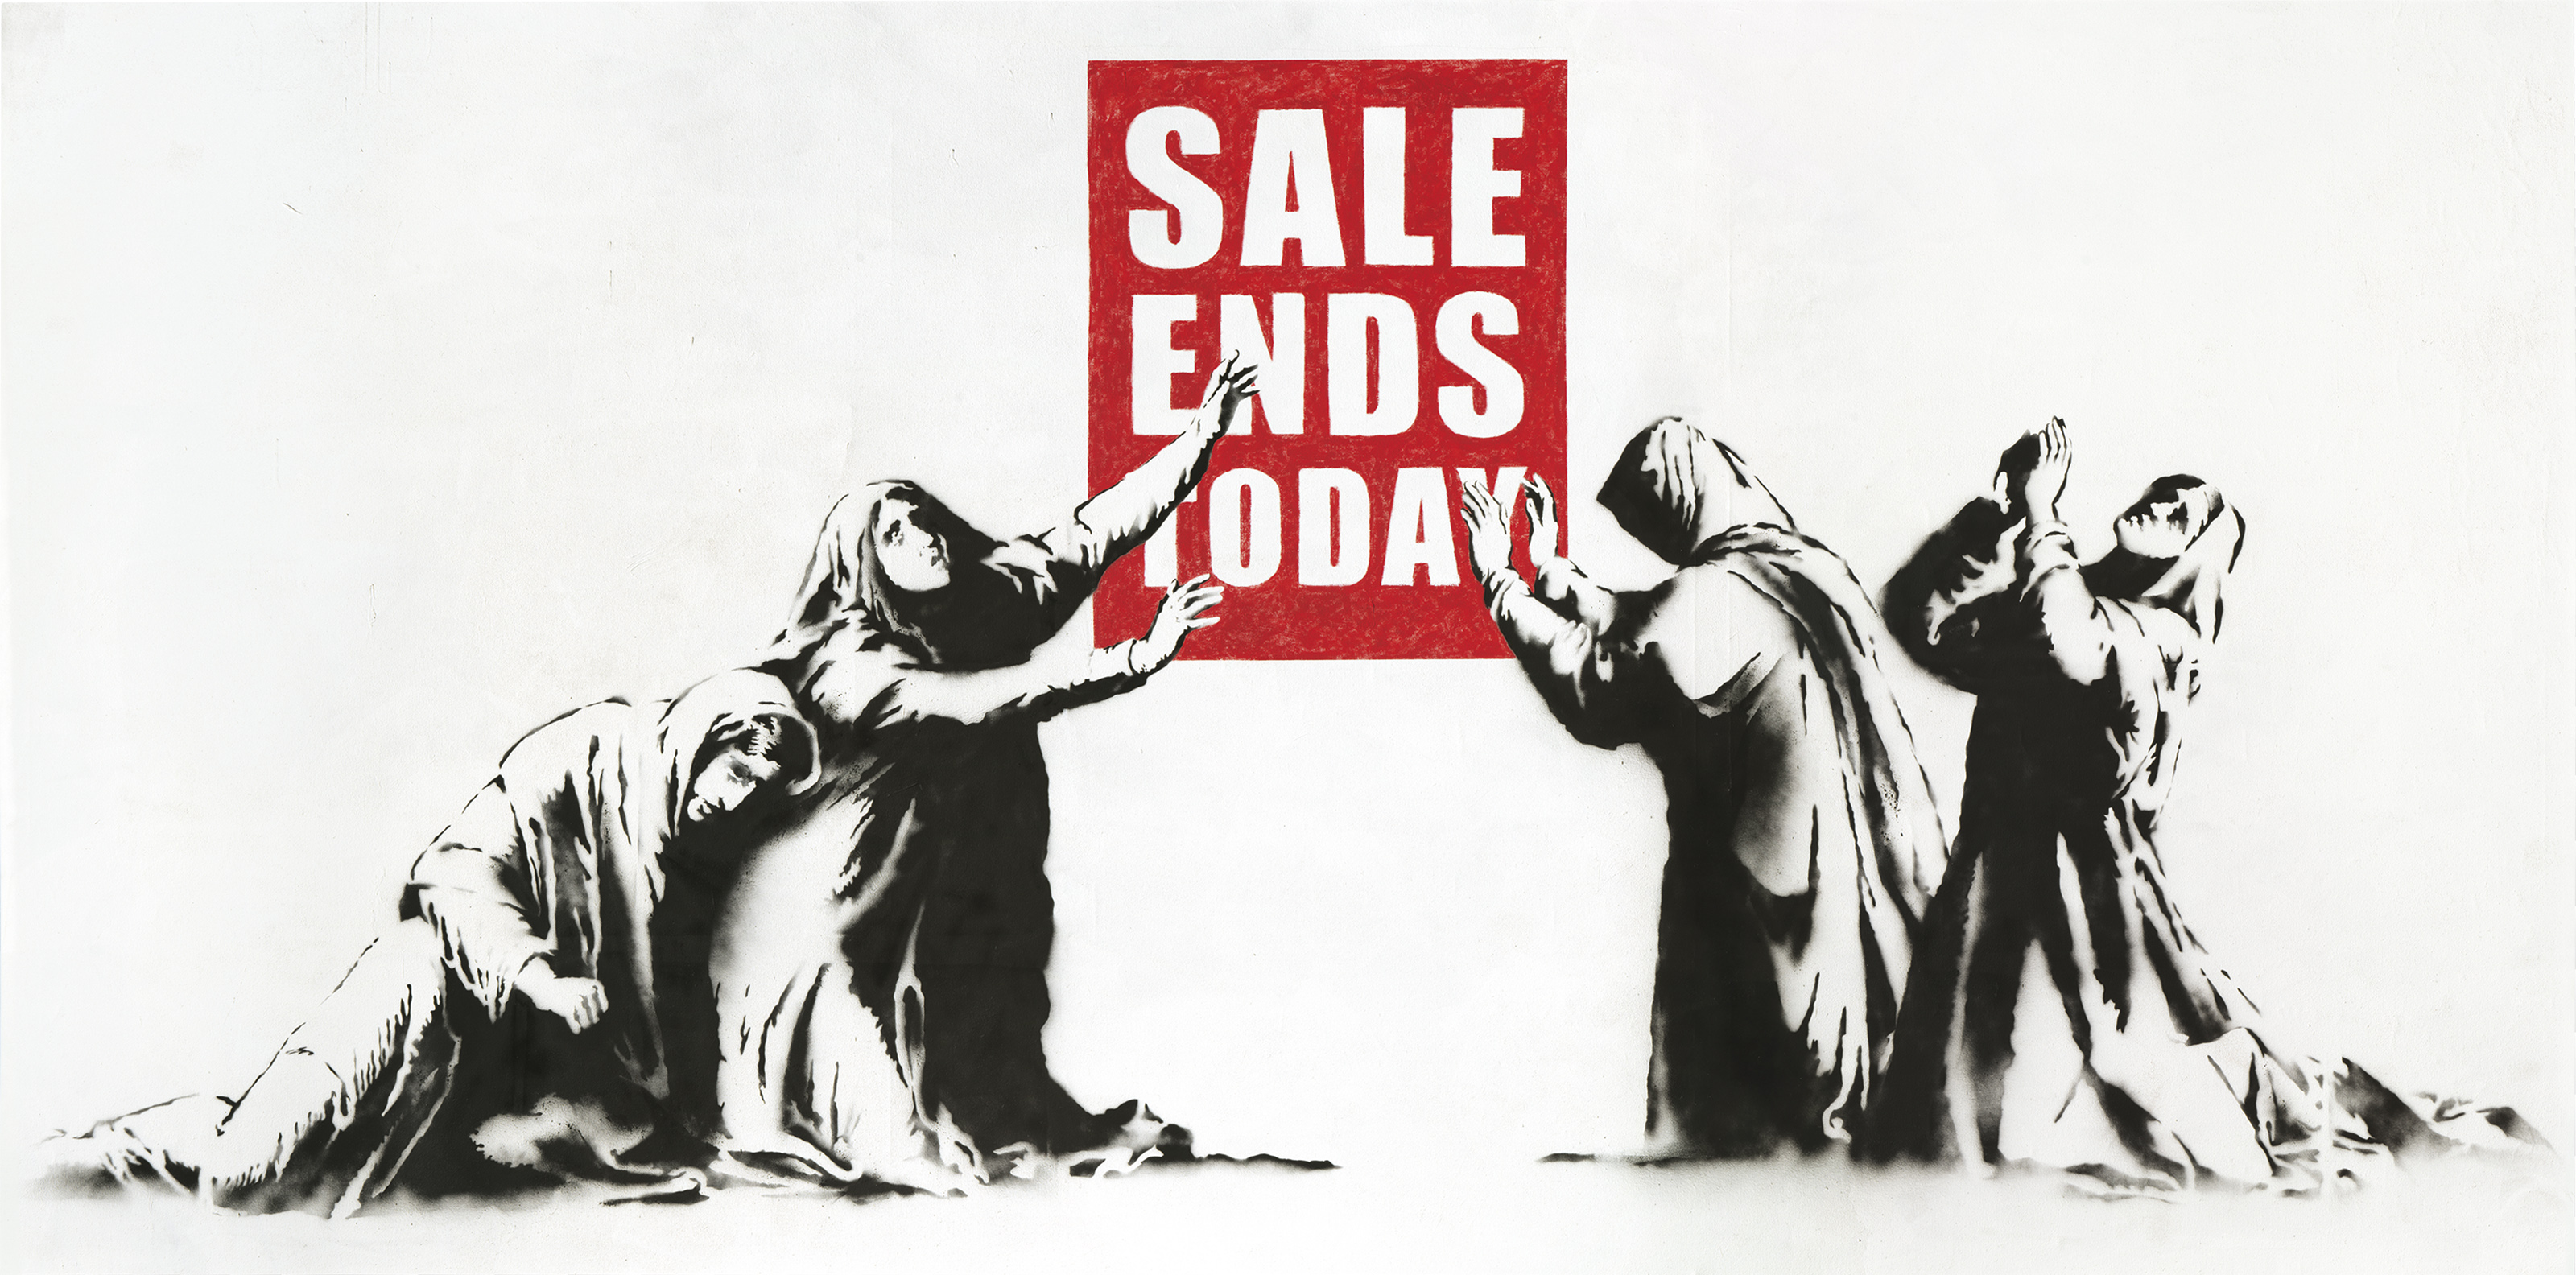 Banksy, Sale Ends Today, 2006.Oil on canvas. (84 x 168 in) 213.4 x 426.7 cm. Sold for HK$47,050,000 on 24 May 2021 at Christie's in Hong Kong